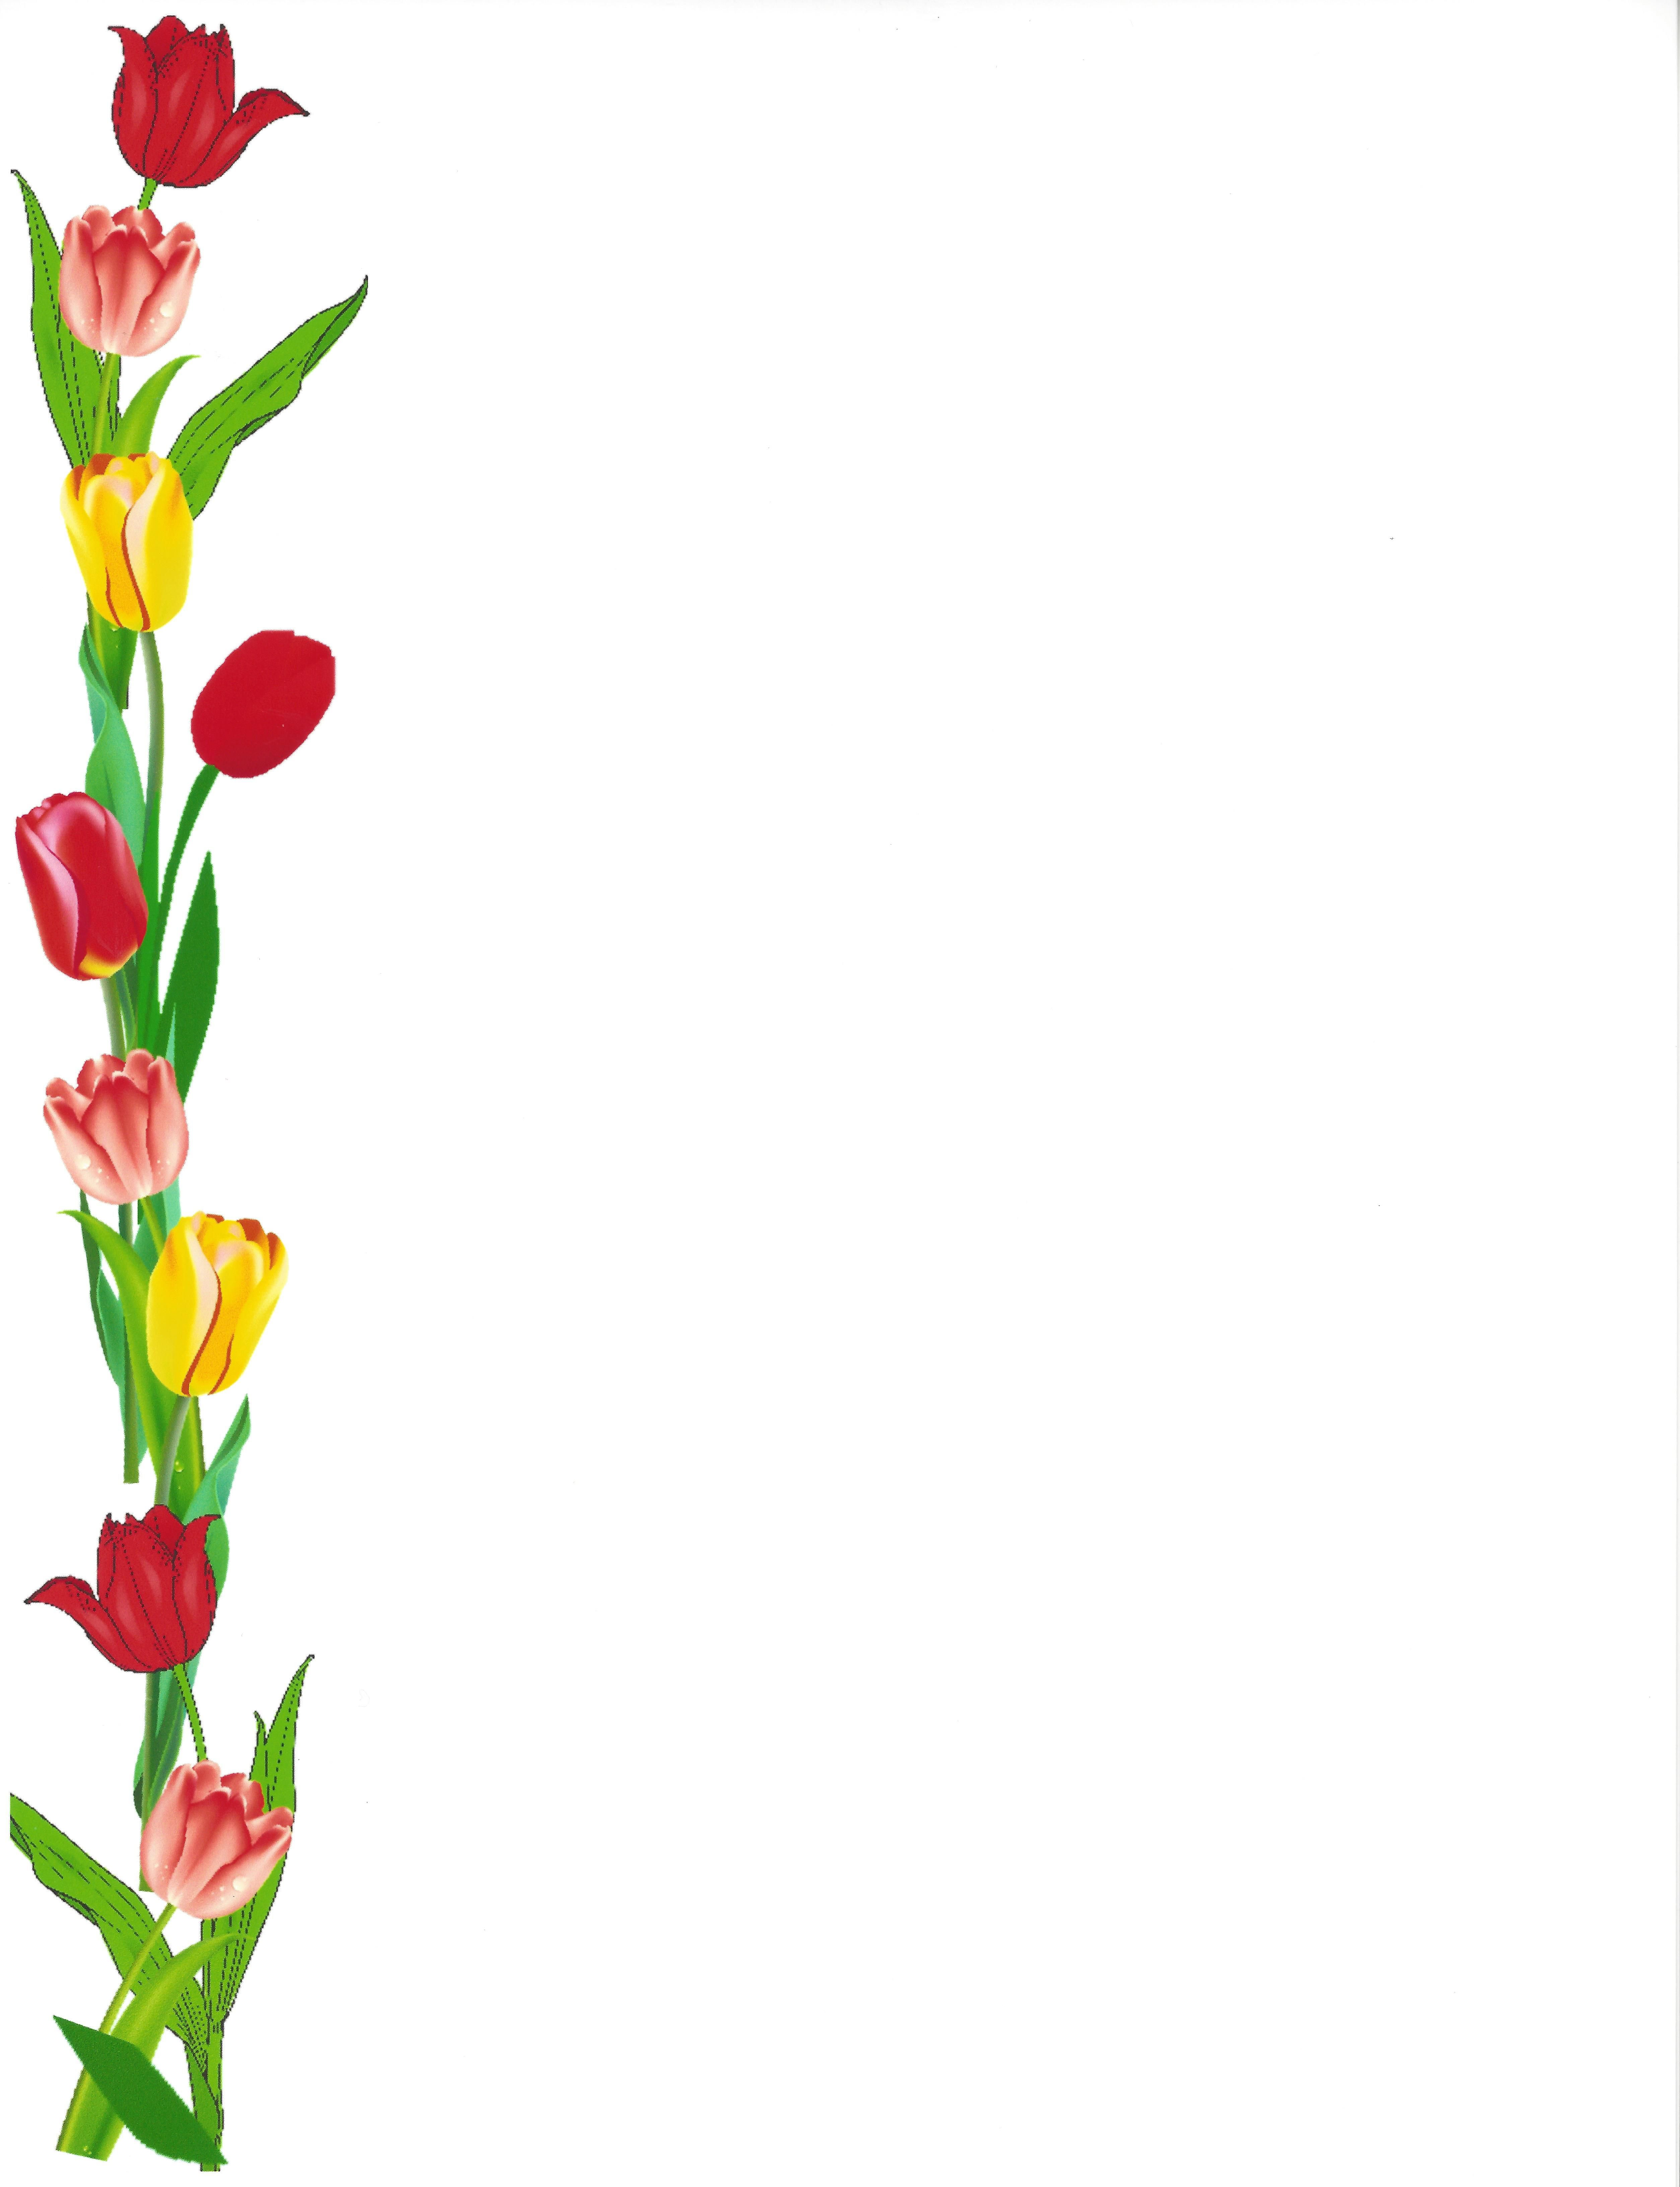 Border Tulips Left Side Colorful Borders Design Frame Border Design Borders For Paper